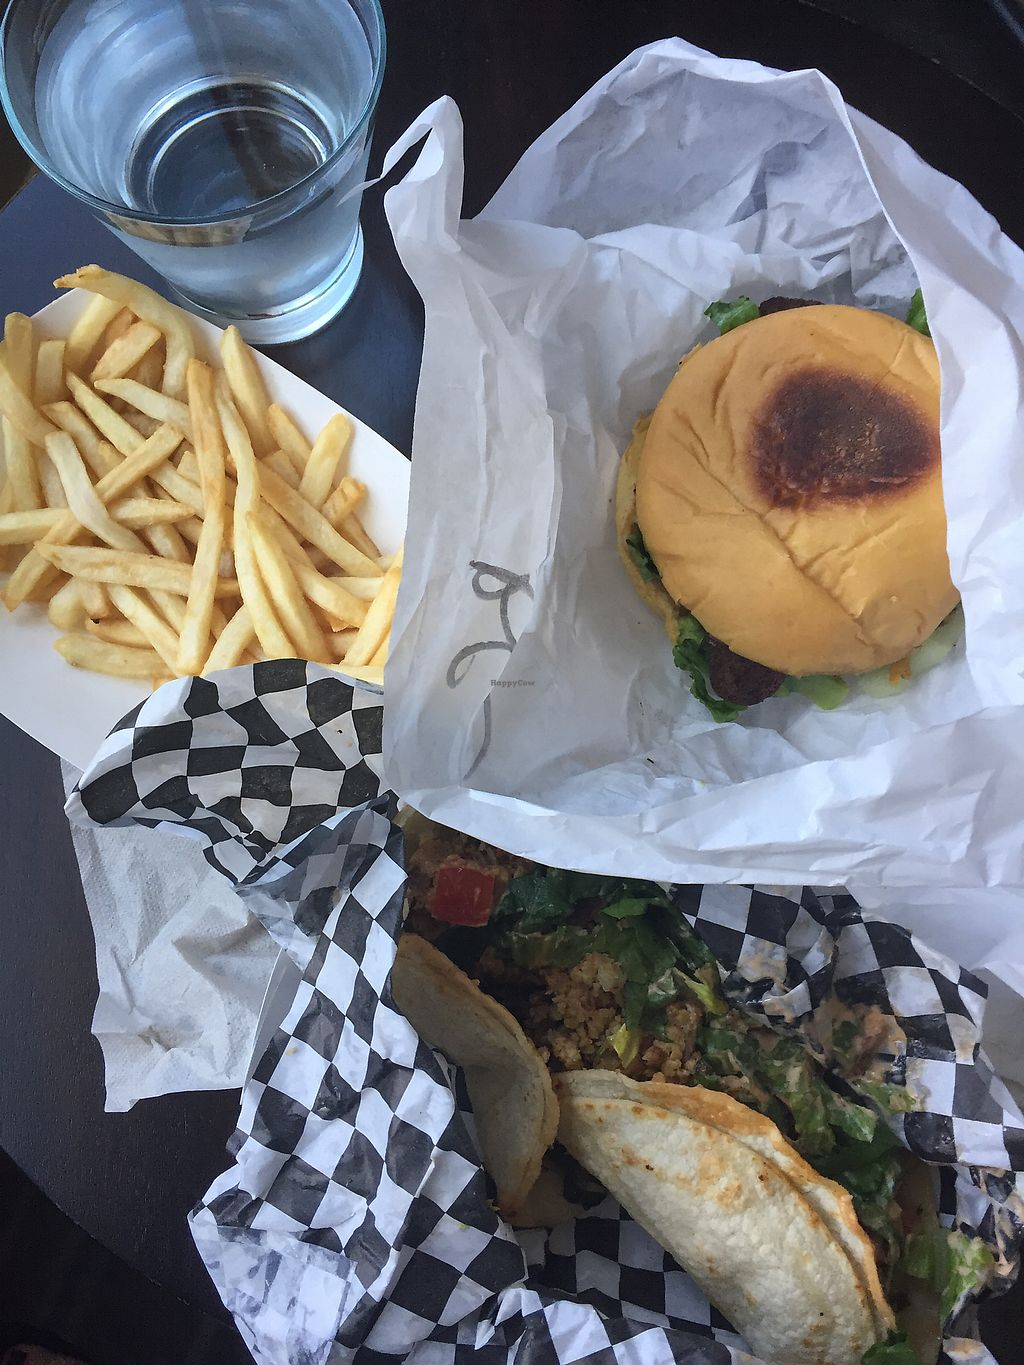 """Photo of Arlo's Food Truck - The Grackle  by <a href=""""/members/profile/EricaEff"""">EricaEff</a> <br/>Bacon cheeseburger is a must! Chickn tacos were just okay <br/> May 6, 2018  - <a href='/contact/abuse/image/98710/396249'>Report</a>"""